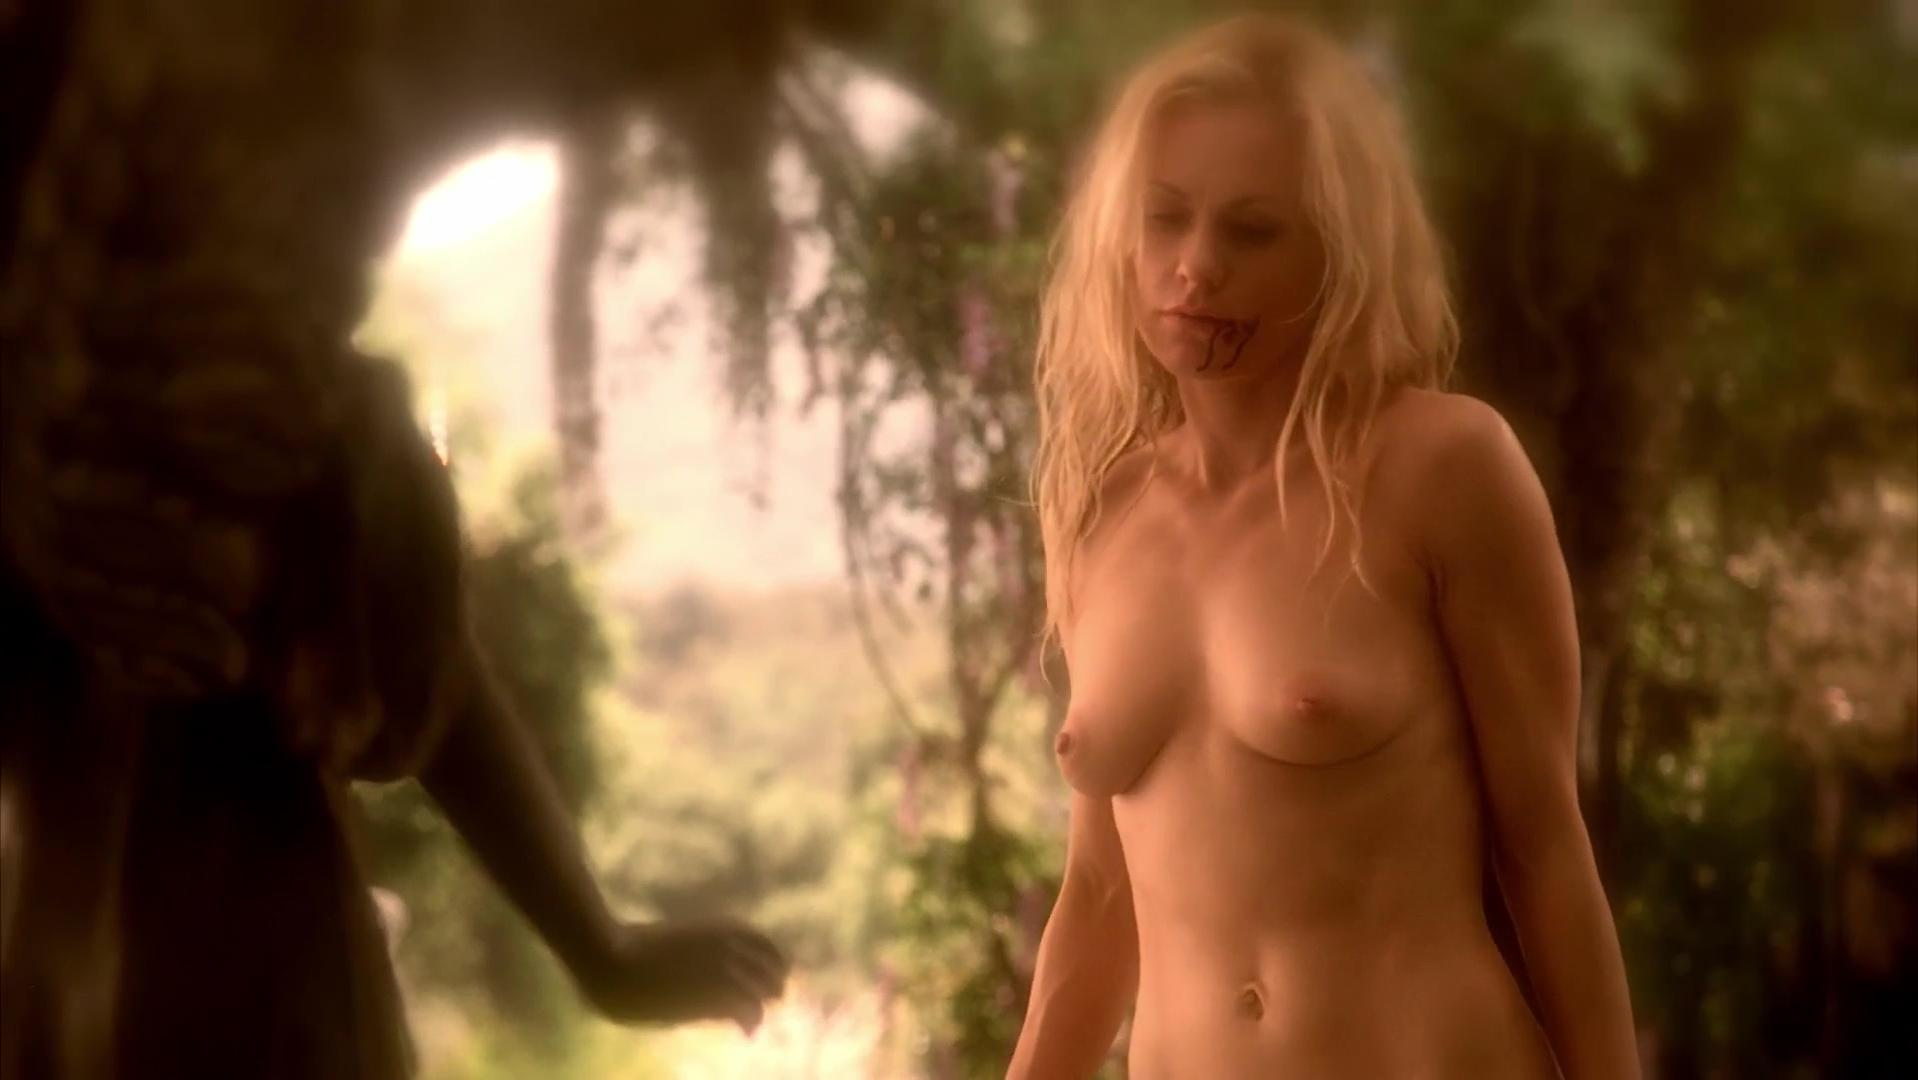 Anna paquin riding a guy in true blood series